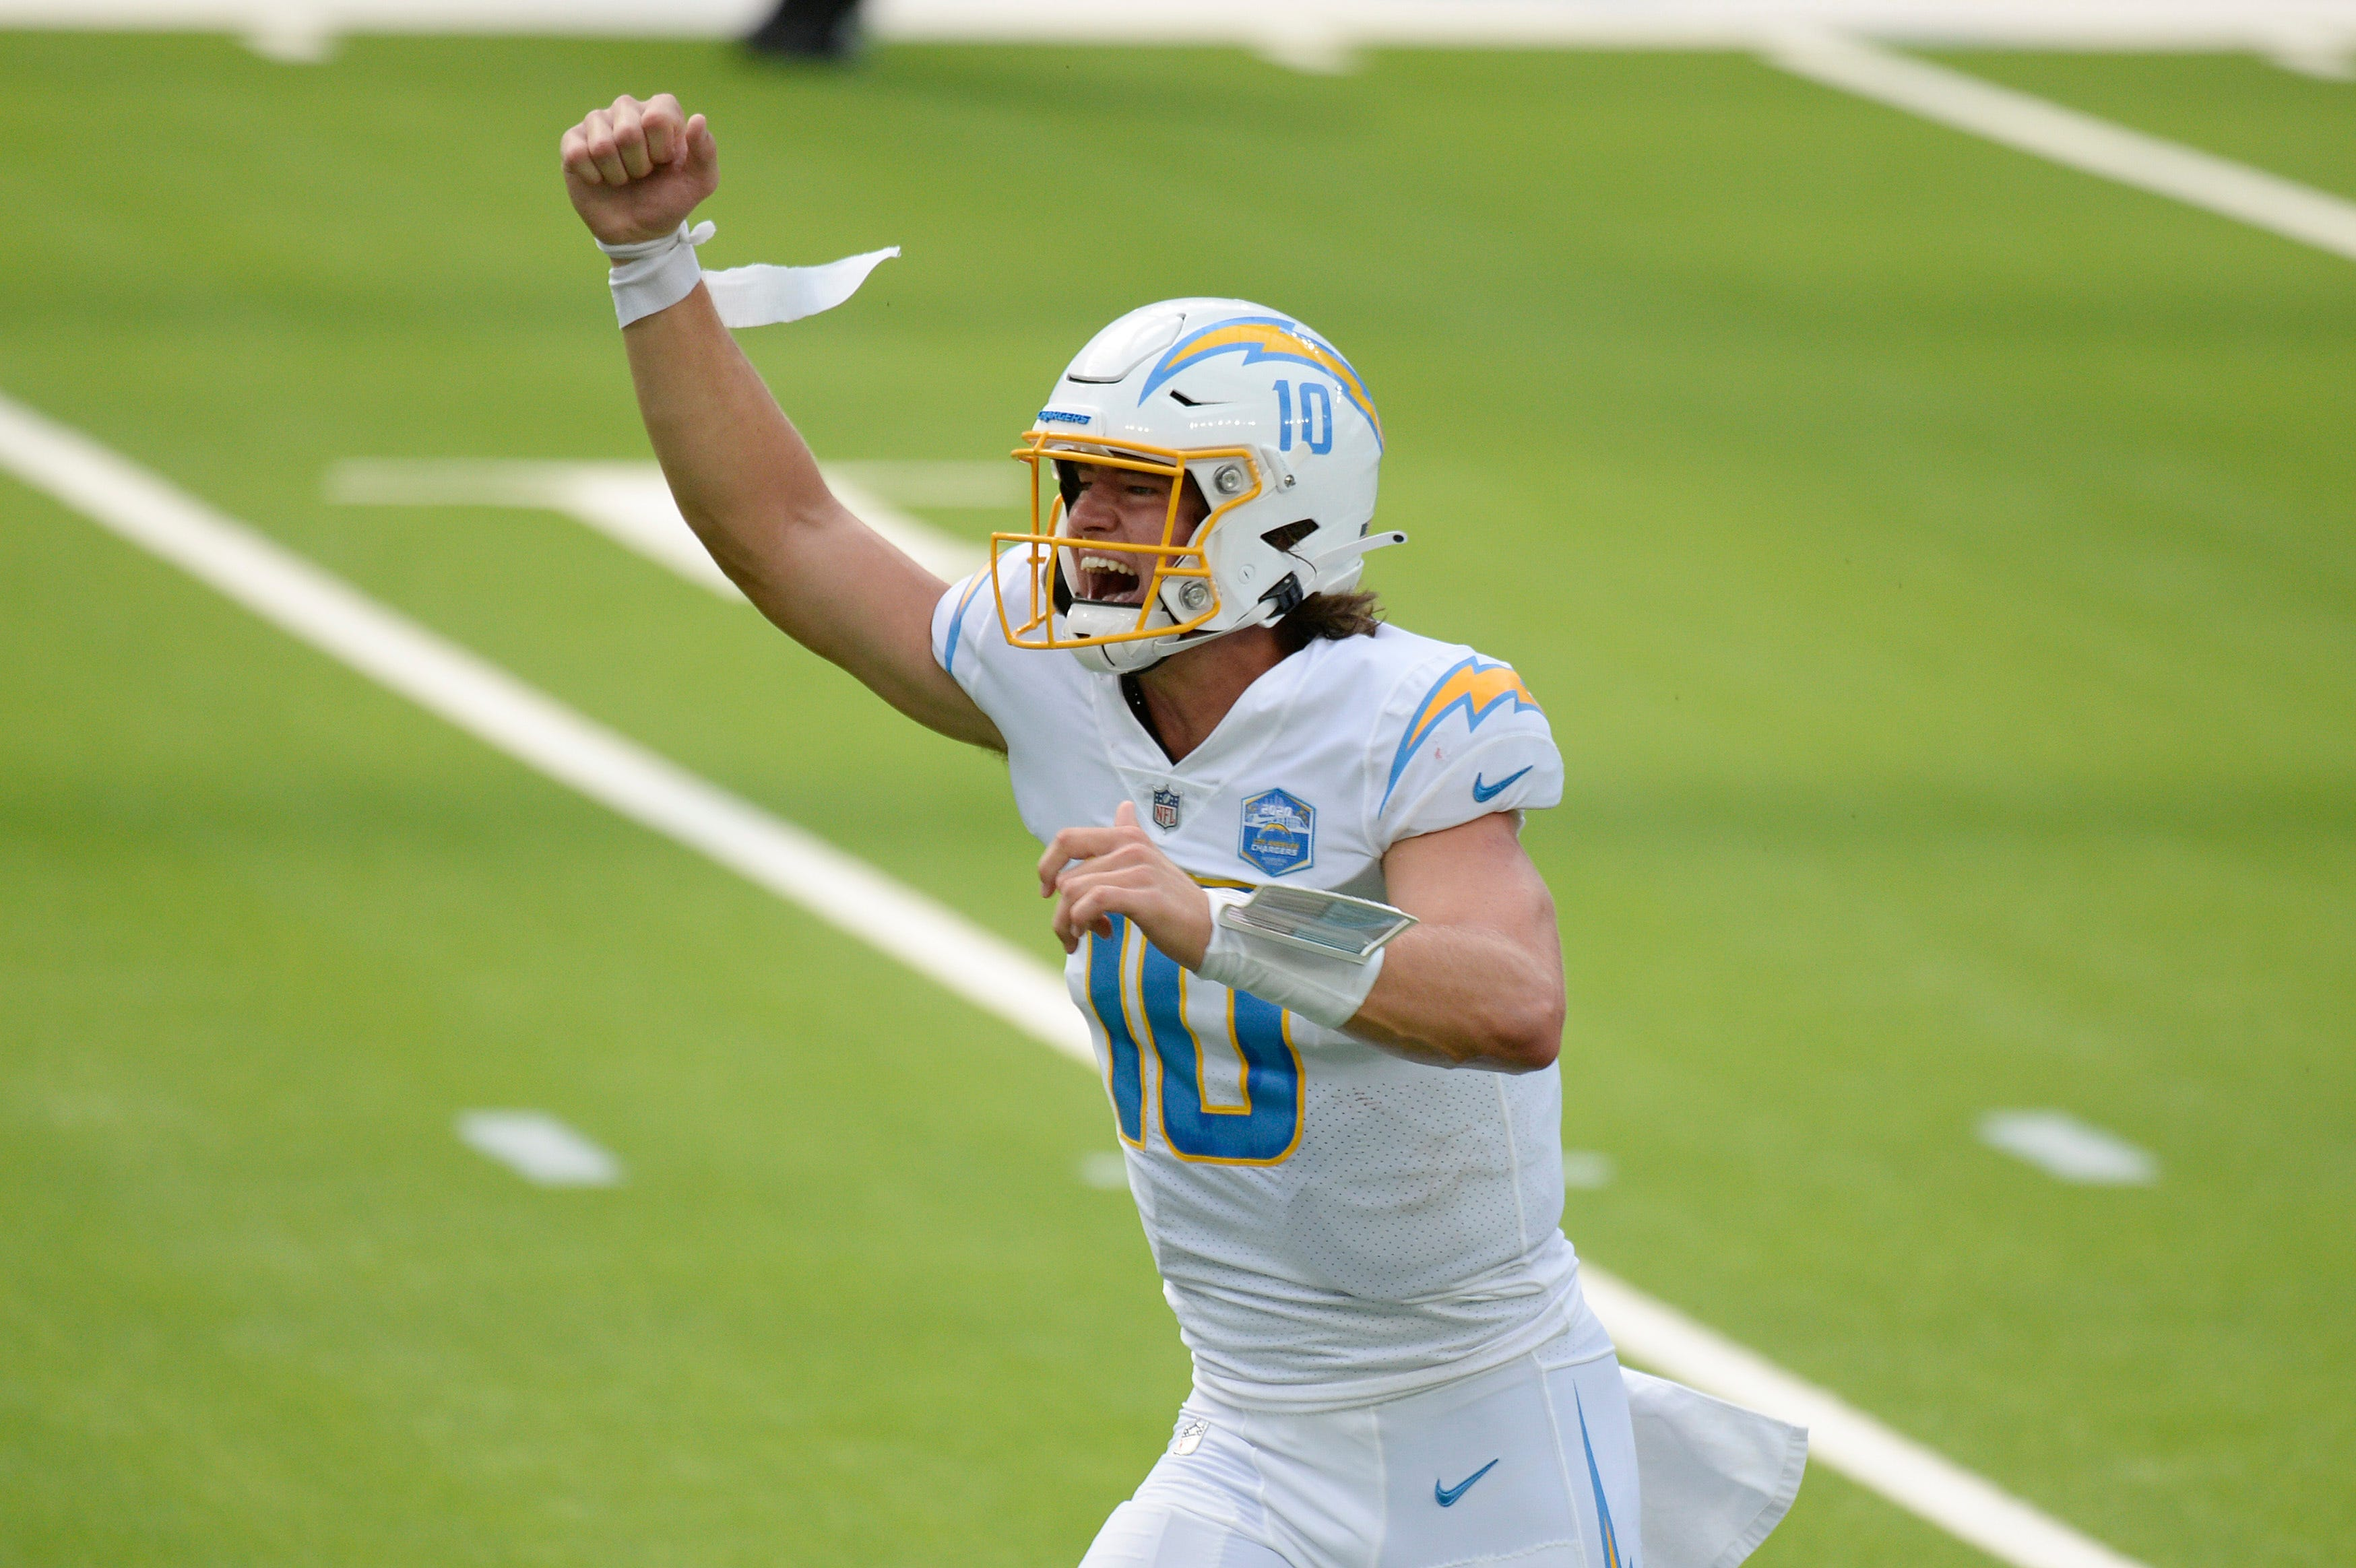 Ex Oregon Qb Herbert Makes First Start For Chargers In Loss To Chiefs